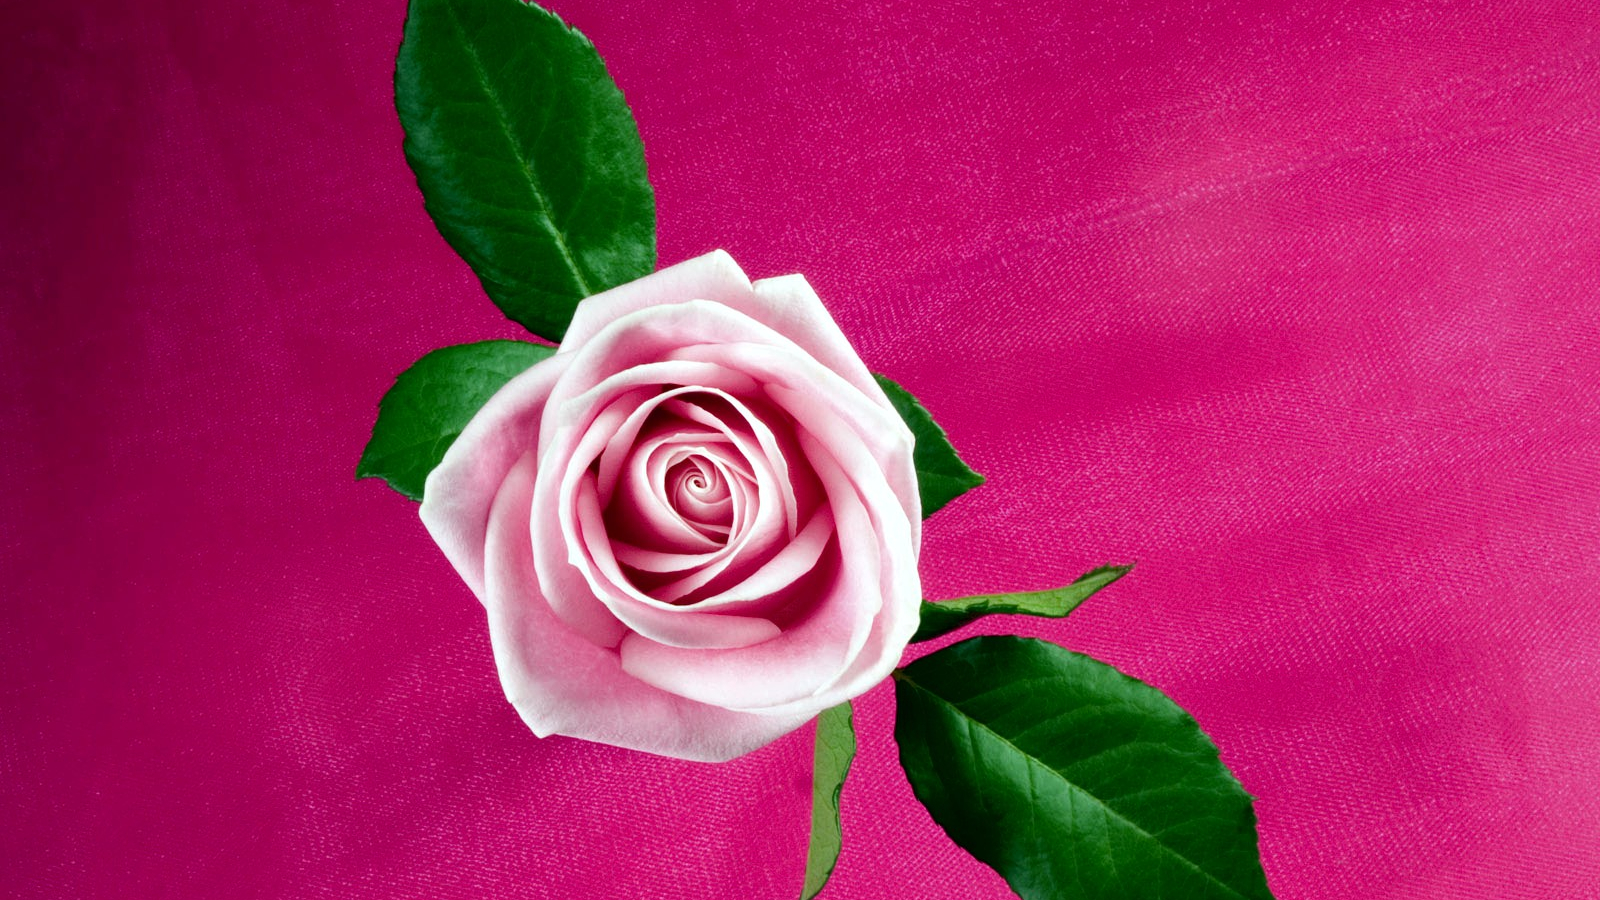 Free Download Cool Pink Rose Love Hd Photo Wallpapers Fullsize